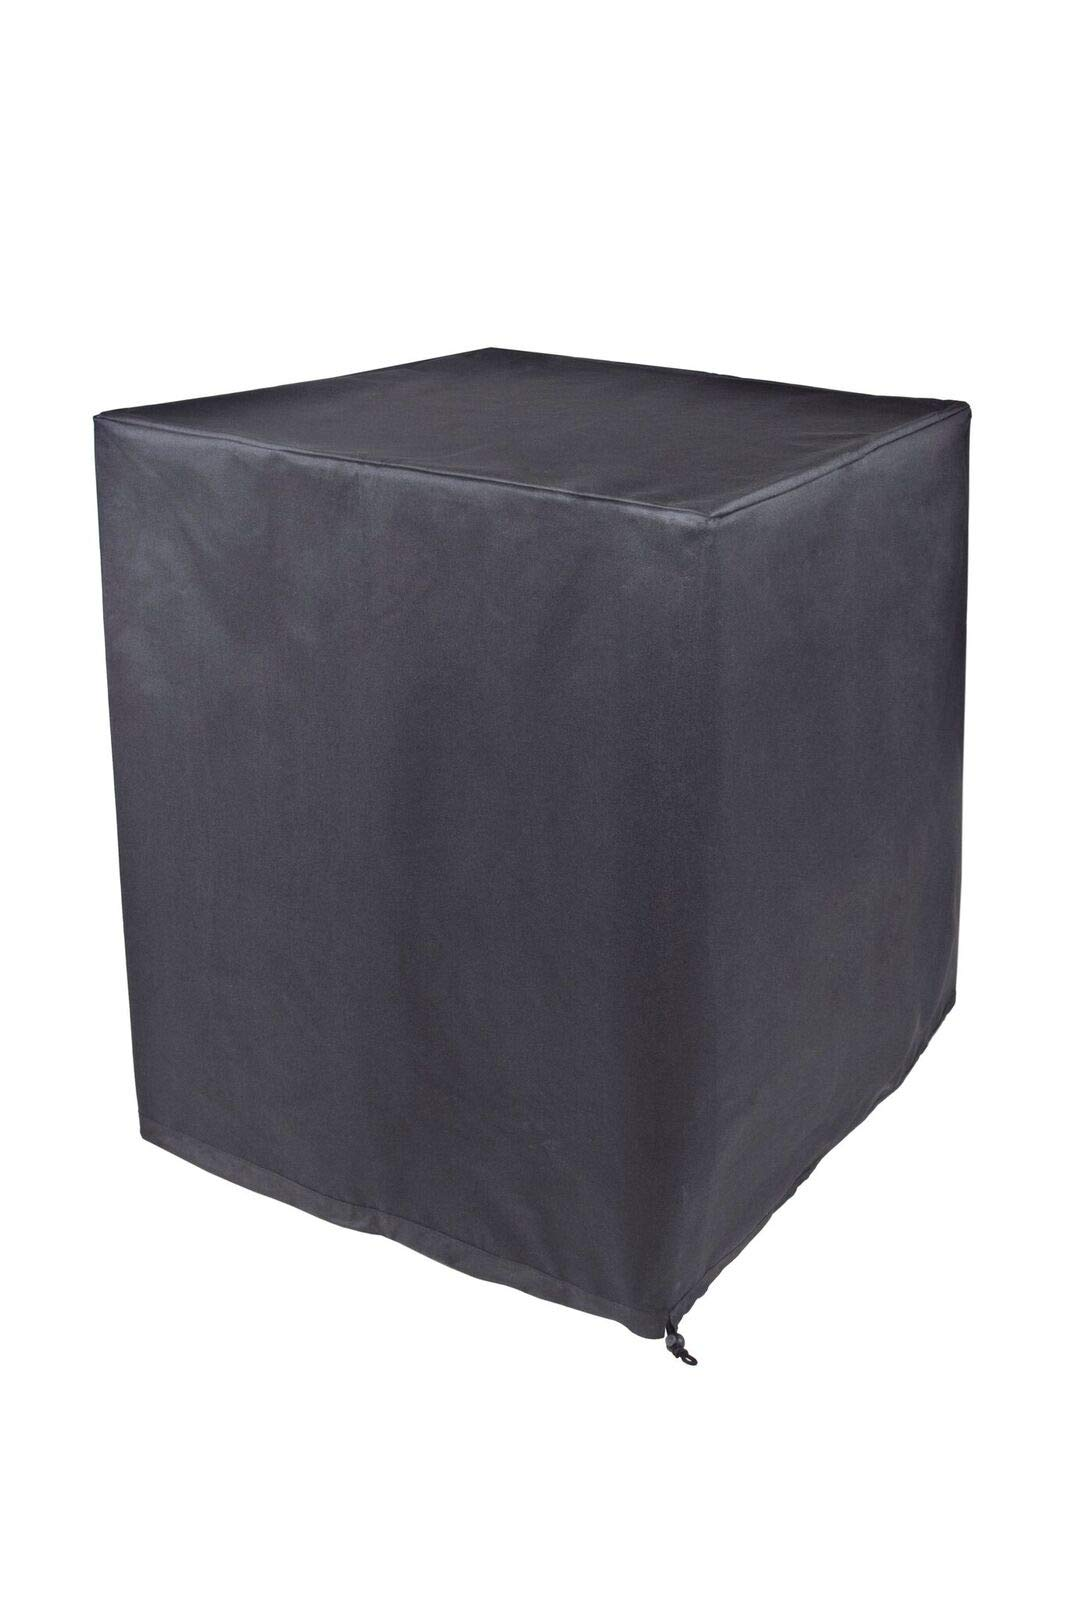 Sturdy Covers AC Defender - Full Winter AC Cover Outdoor Protection